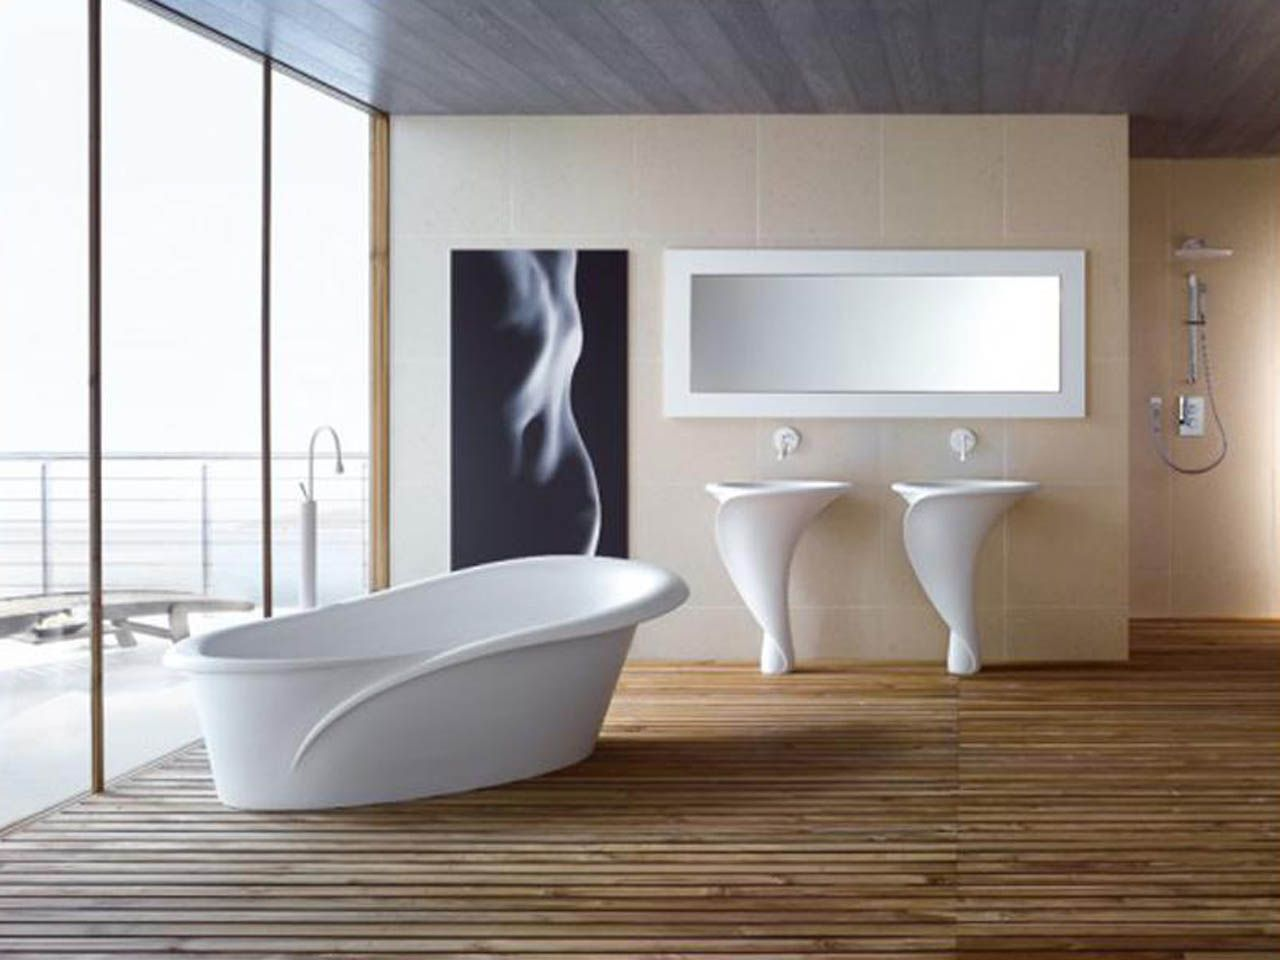 Bathroom Design, Exquisite Sexy Twisting Italian Bathroom Interior Design  Ideas With White Washstand Body Size